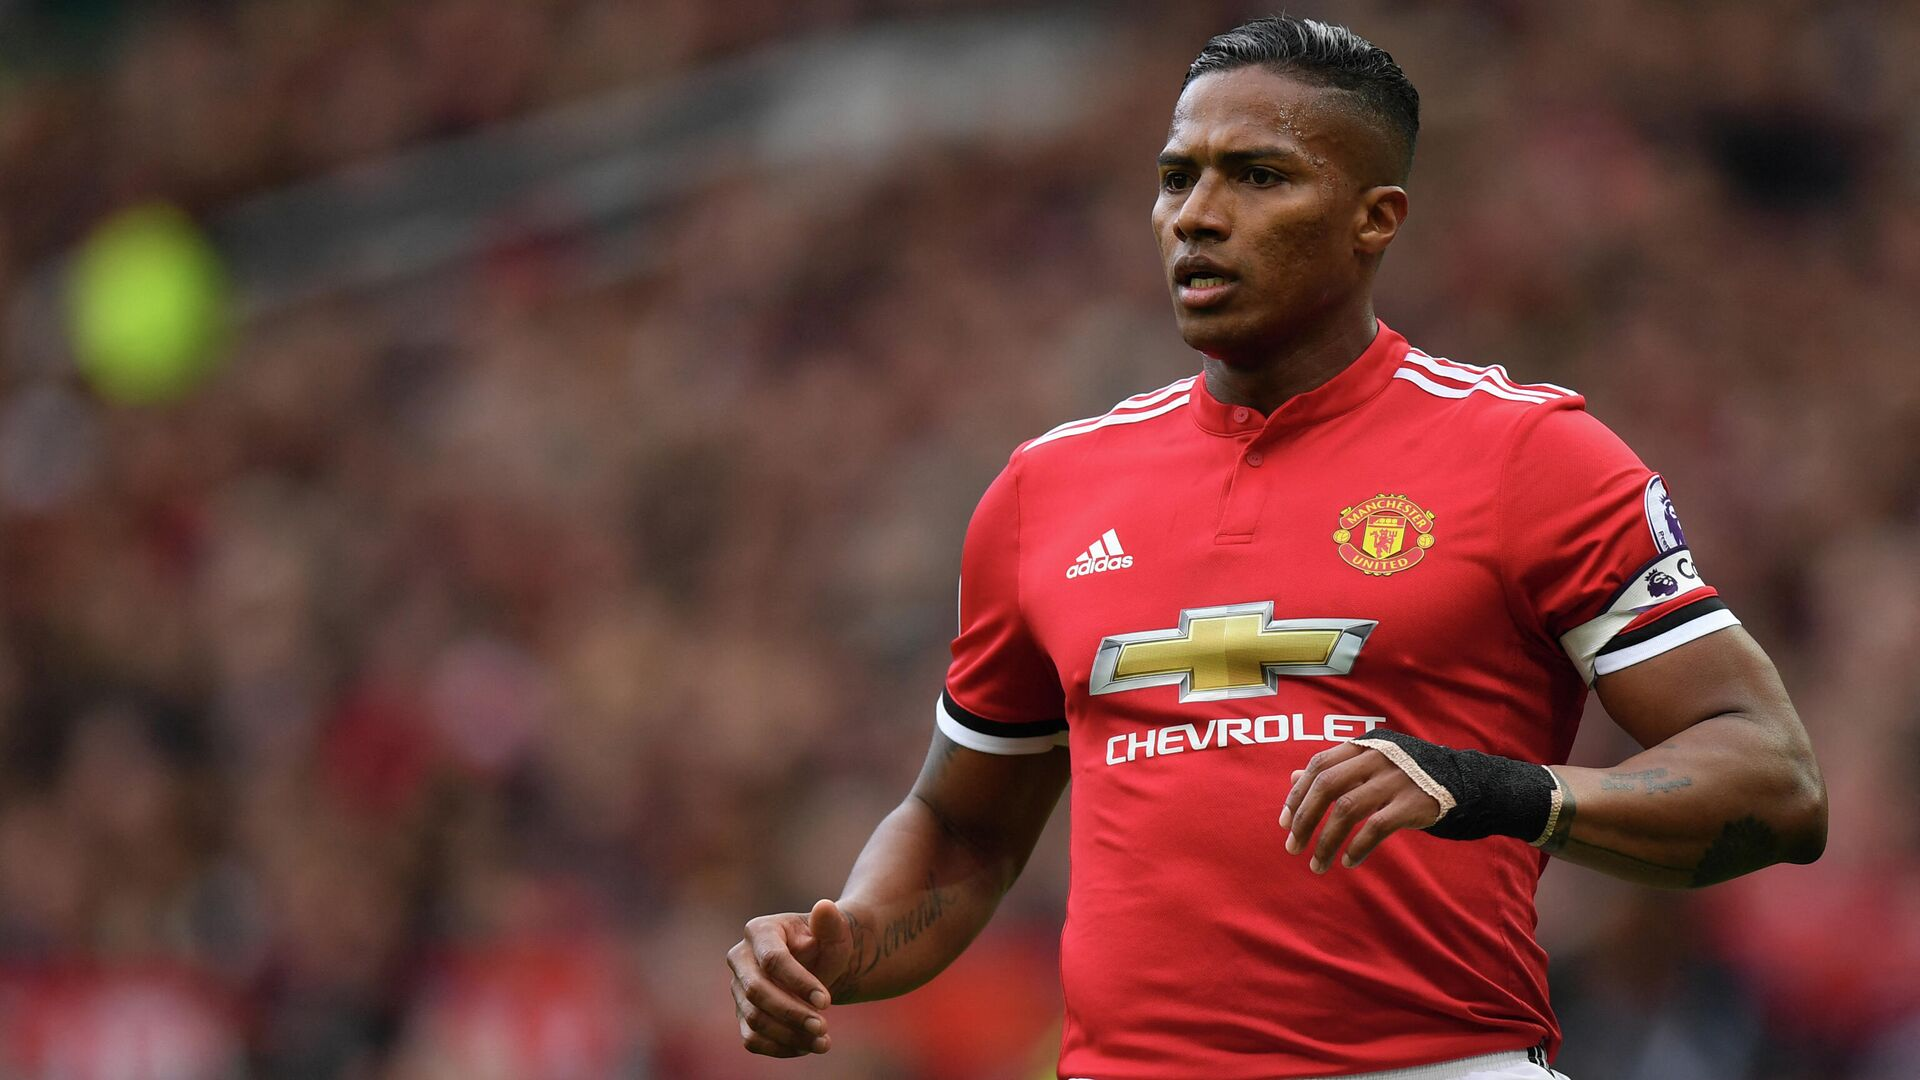 Manchester United's Ecuadorian midfielder Antonio Valencia is pictured during the English Premier League football match between Manchester United and Arsenal at Old Trafford in Manchester, north west England, on April 29, 2018. (Photo by Paul ELLIS / AFP) / RESTRICTED TO EDITORIAL USE. No use with unauthorized audio, video, data, fixture lists, club/league logos or 'live' services. Online in-match use limited to 75 images, no video emulation. No use in betting, games or single club/league/player publications. /  - РИА Новости, 1920, 12.05.2021